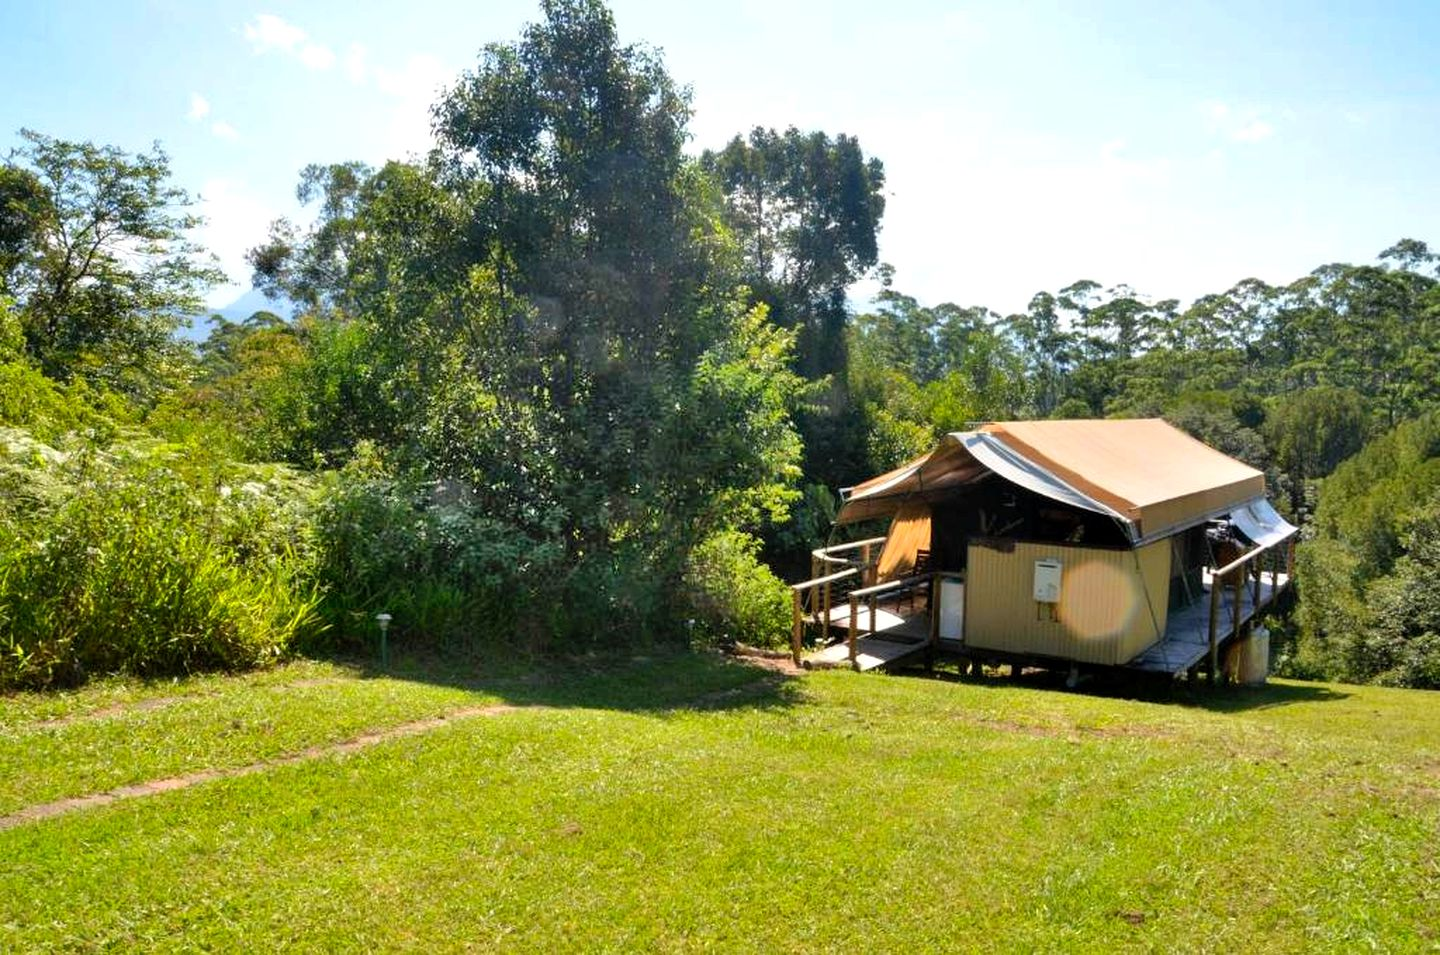 This Mount Burrell glamping has a peaceful location and is the ideal holiday house near Gold Coast. Accommodations like this are one-of-a-kind!